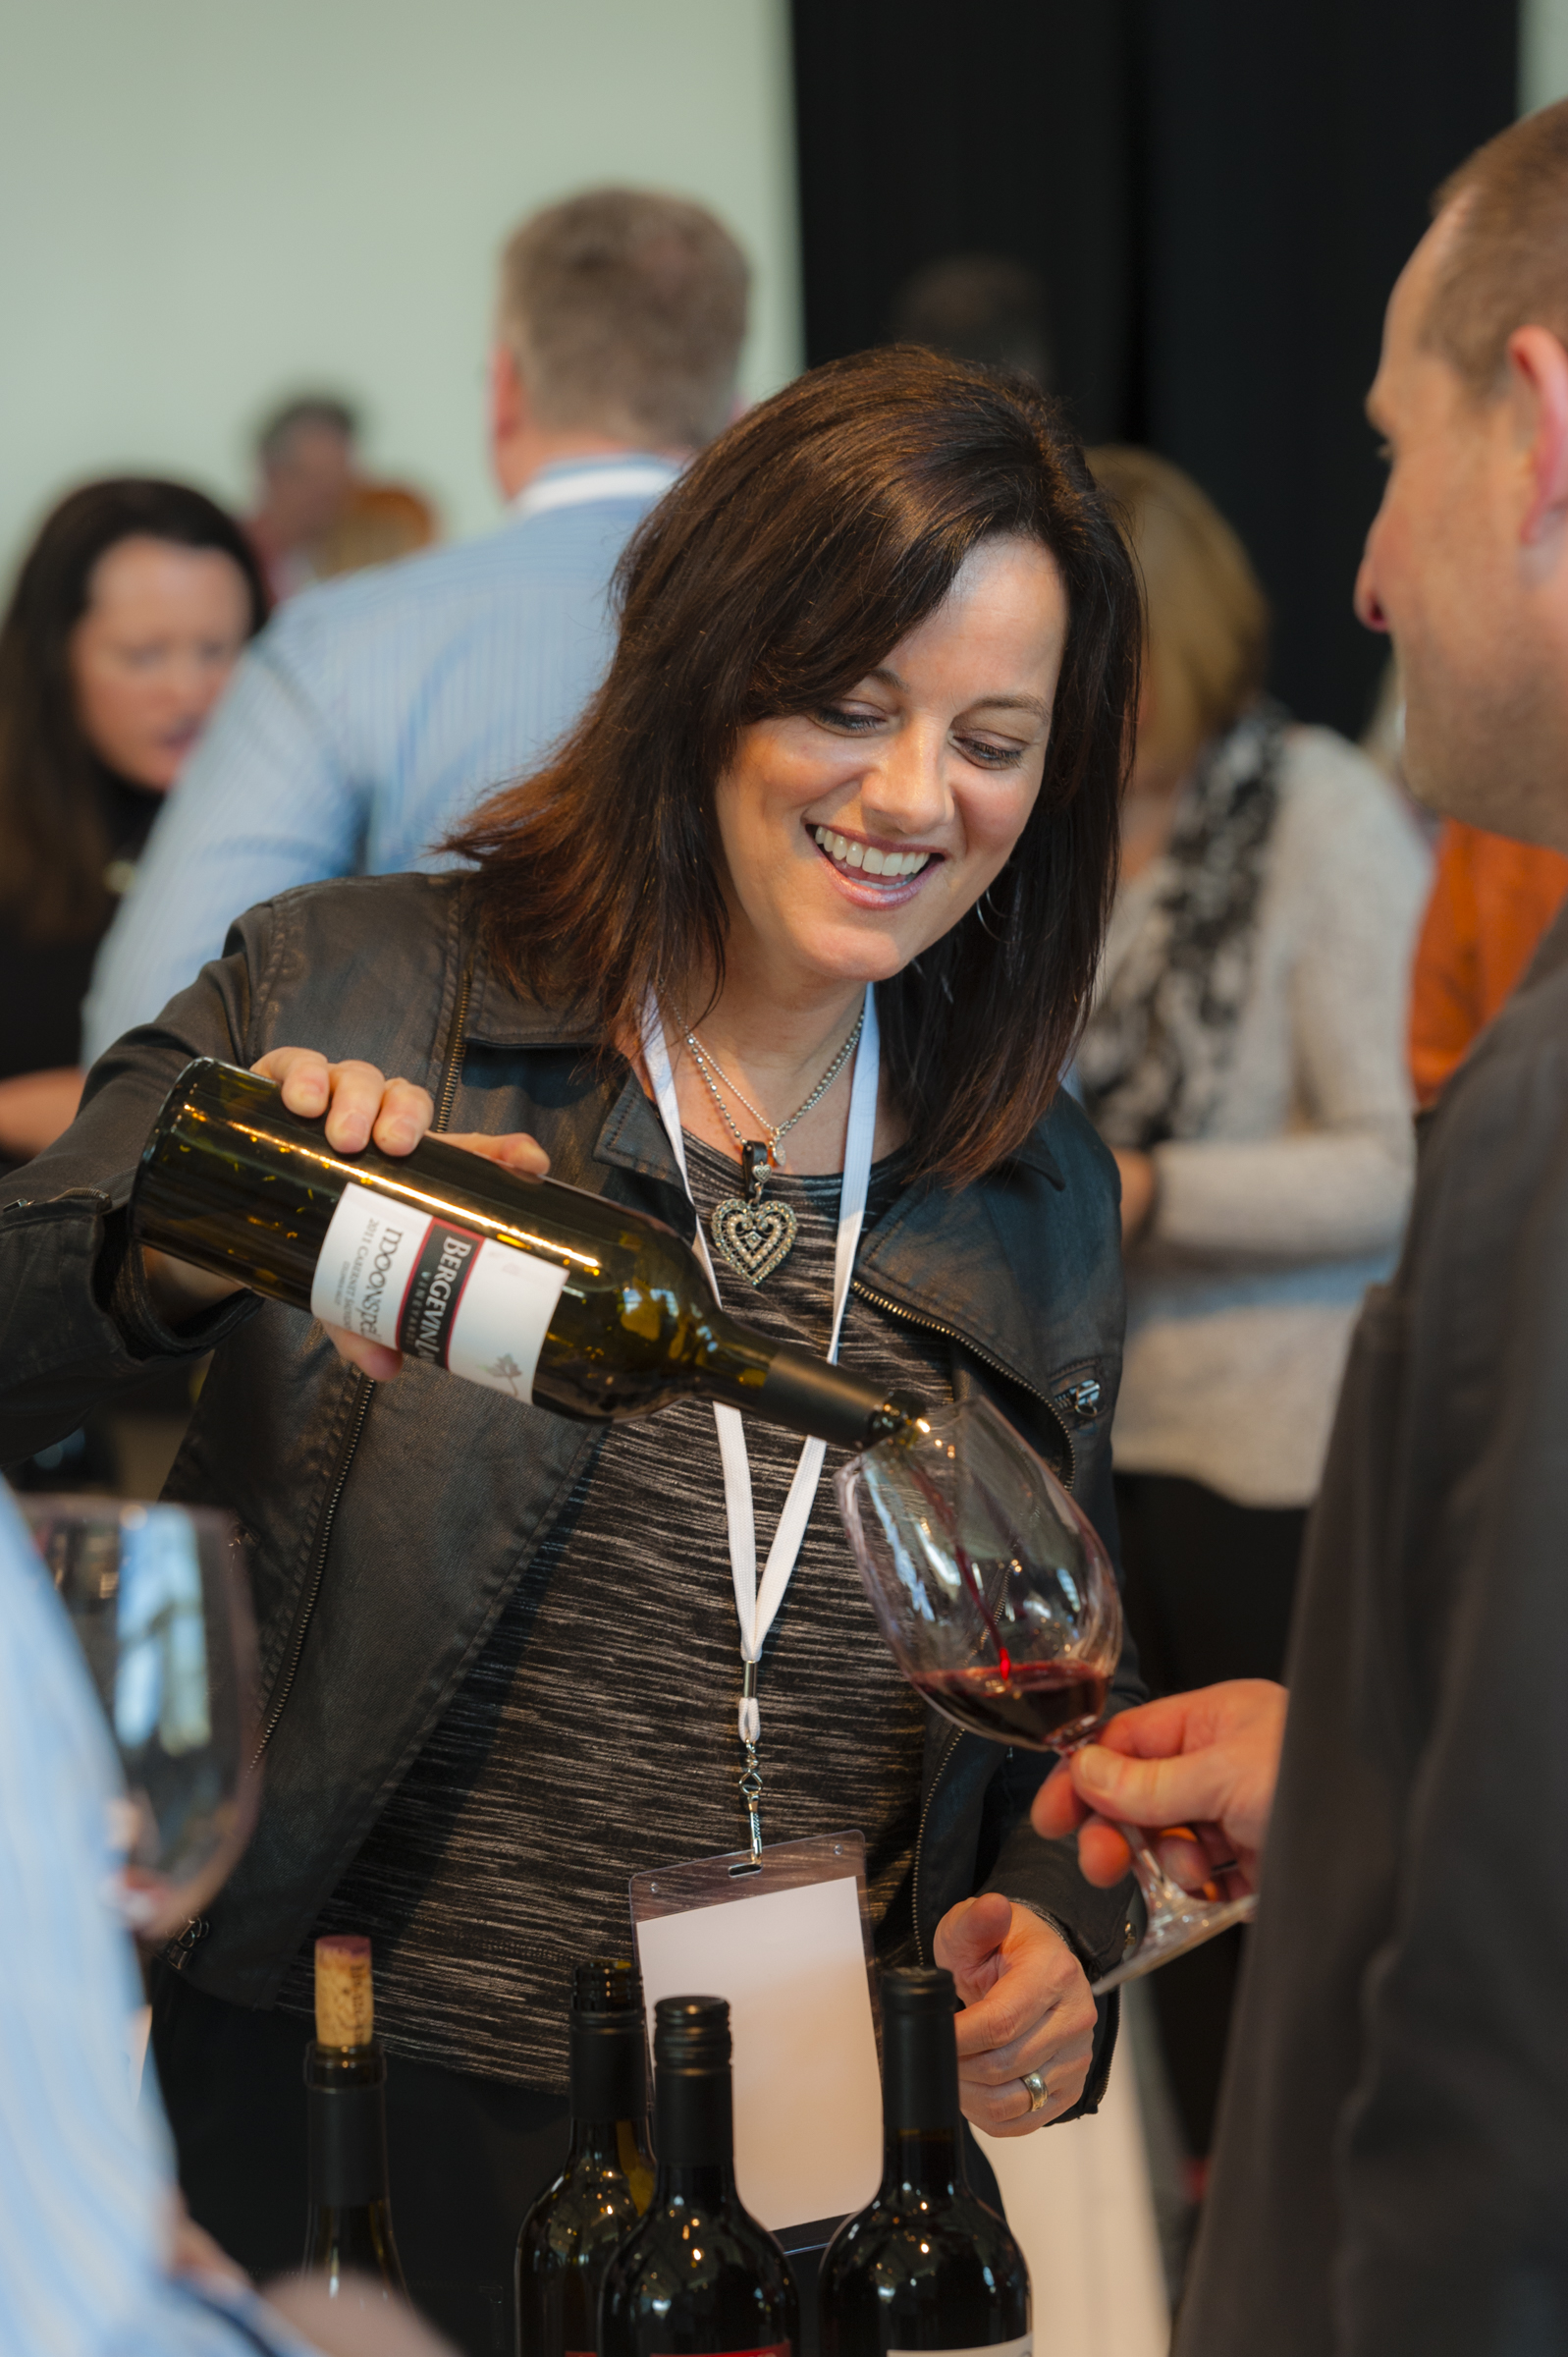 Annette Bergevin, with her signature inviting smile, pours a sampling of Bergevin Lane Vineyards 2011 Moonspell Cabernet Sauvignon. Photo courtesy of Walla Walla Valley Wine Alliance/Richard Duval Images.